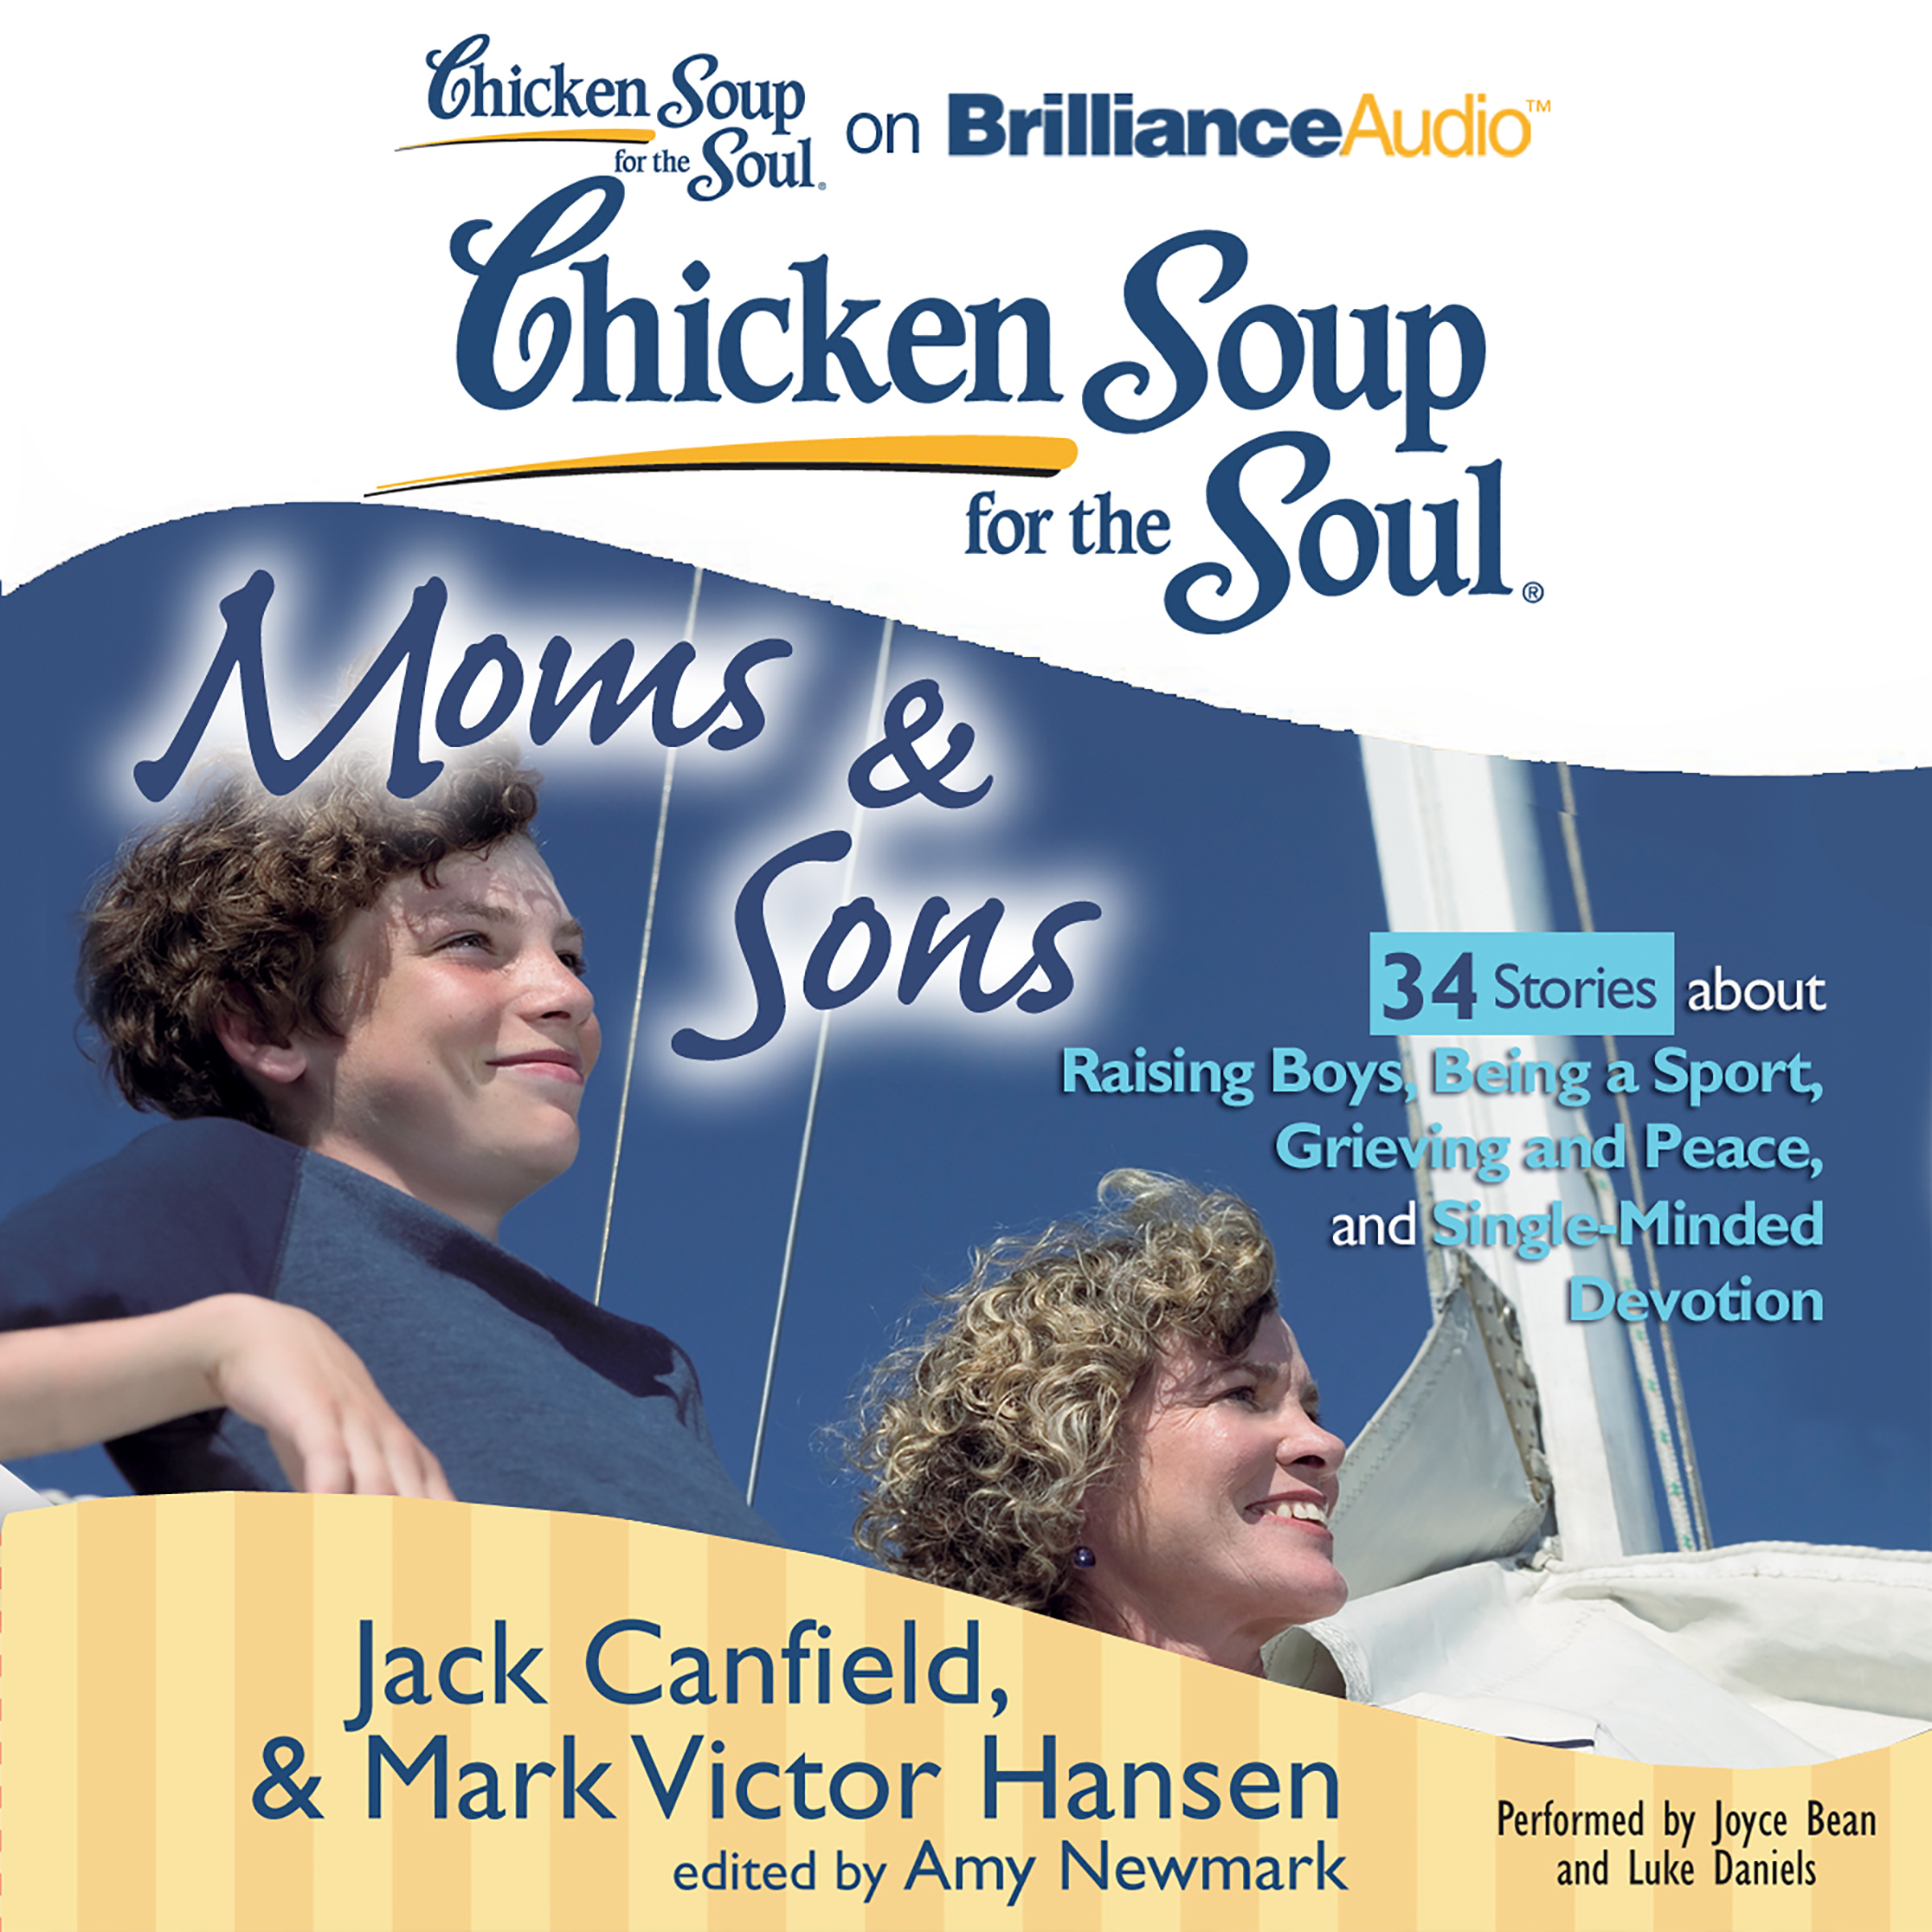 Printable Chicken Soup for the Soul: Moms & Sons - 34 Stories about Raising Boys, Being a Sport, Grieving and Peace, and Single-Minded Dev Audiobook Cover Art